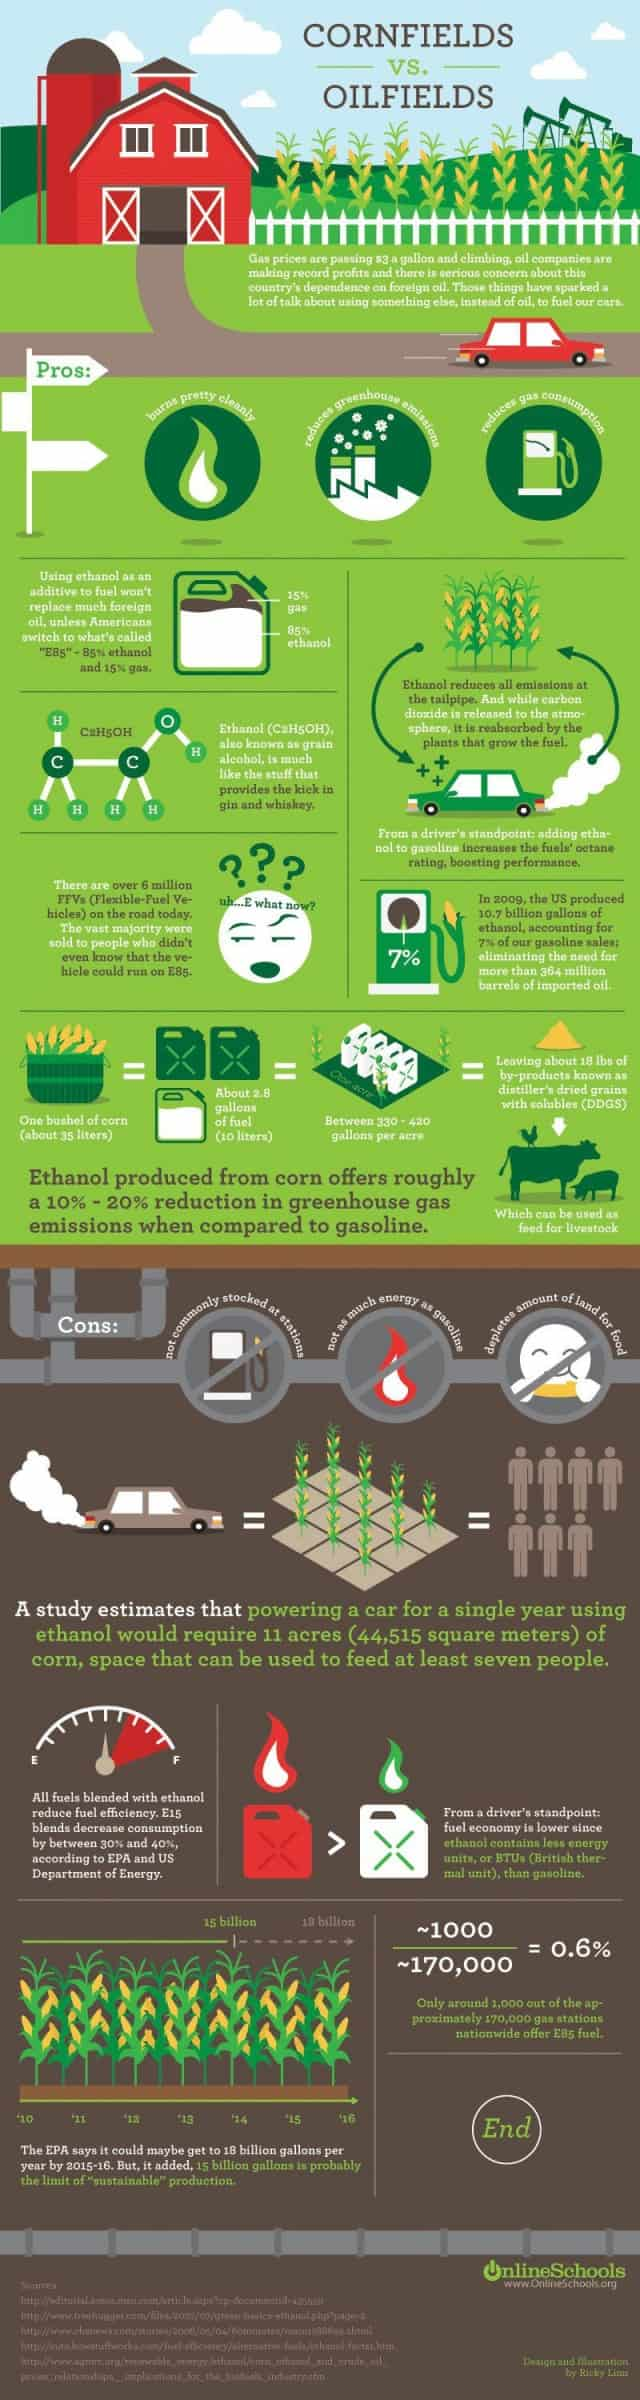 ethanol vs oil daily infographic. Black Bedroom Furniture Sets. Home Design Ideas